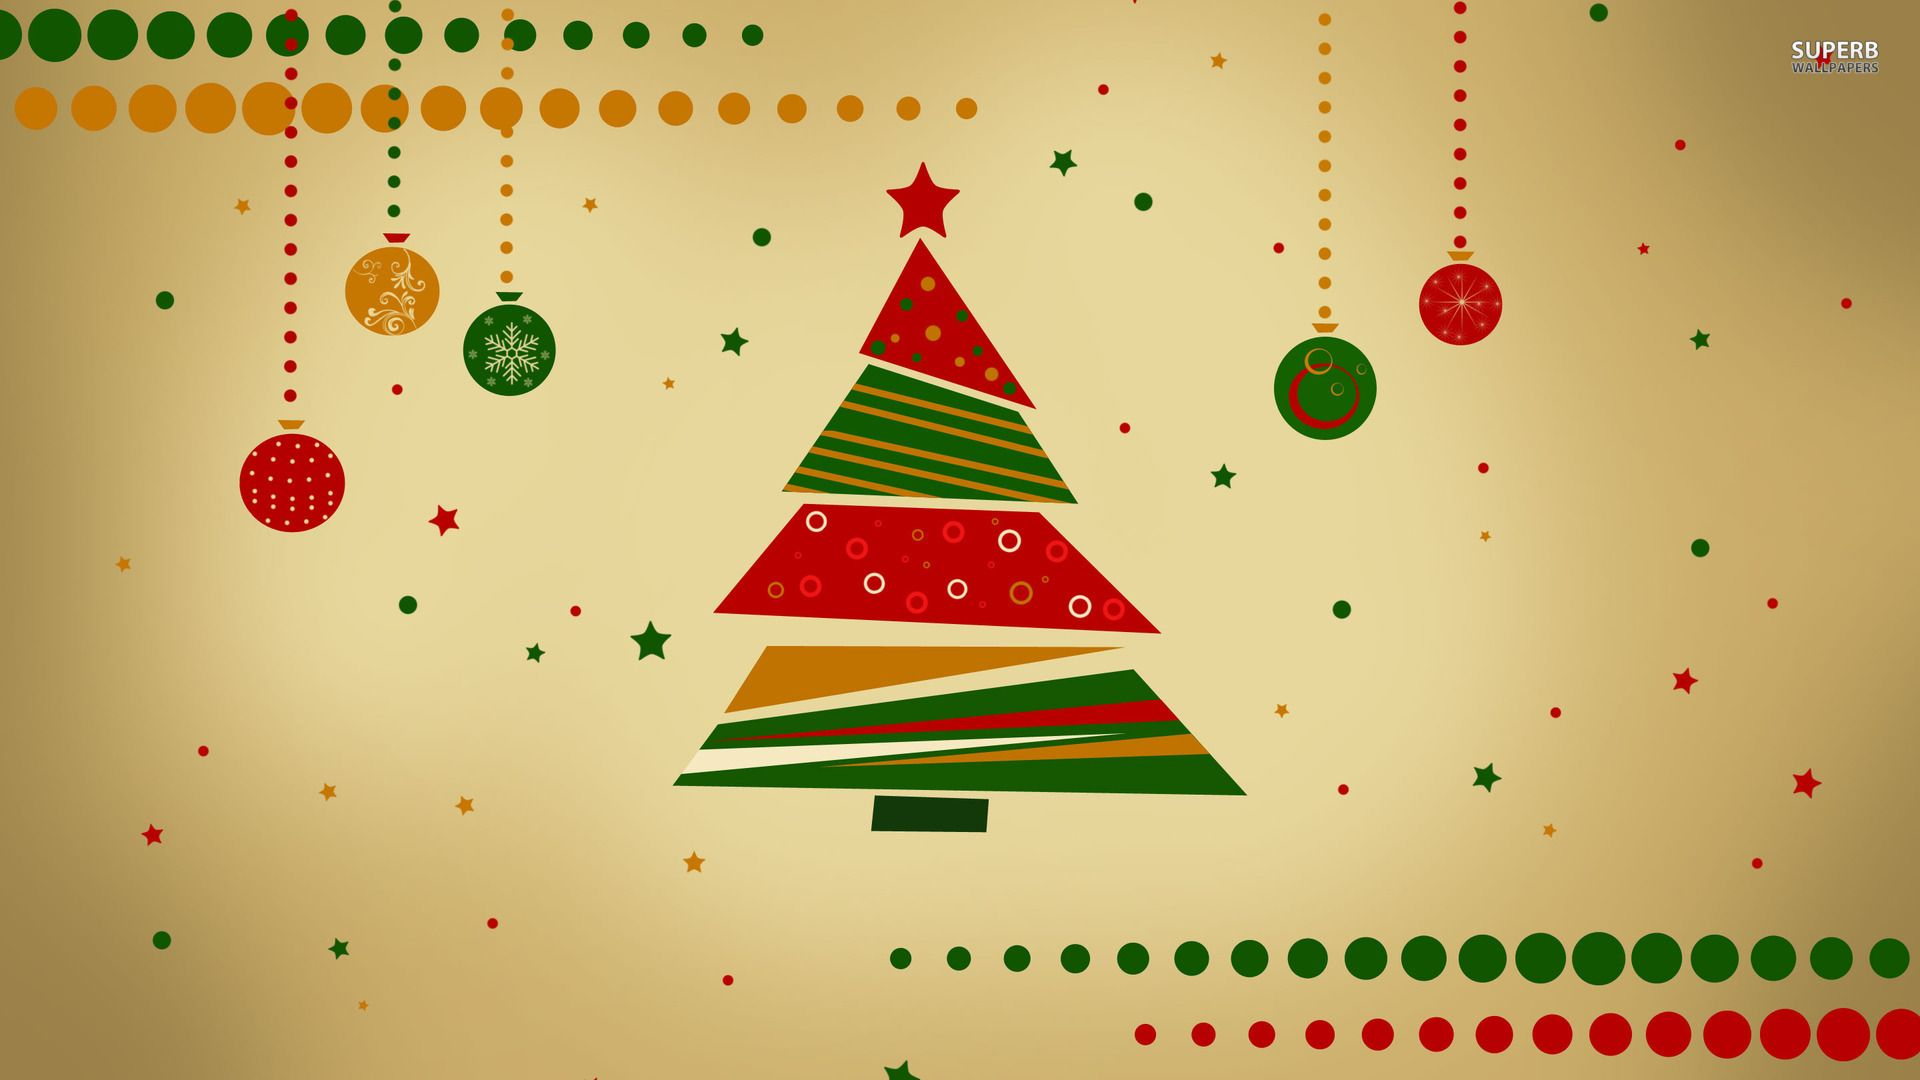 retro christmas wallpaper - Google Search | Desktop ...